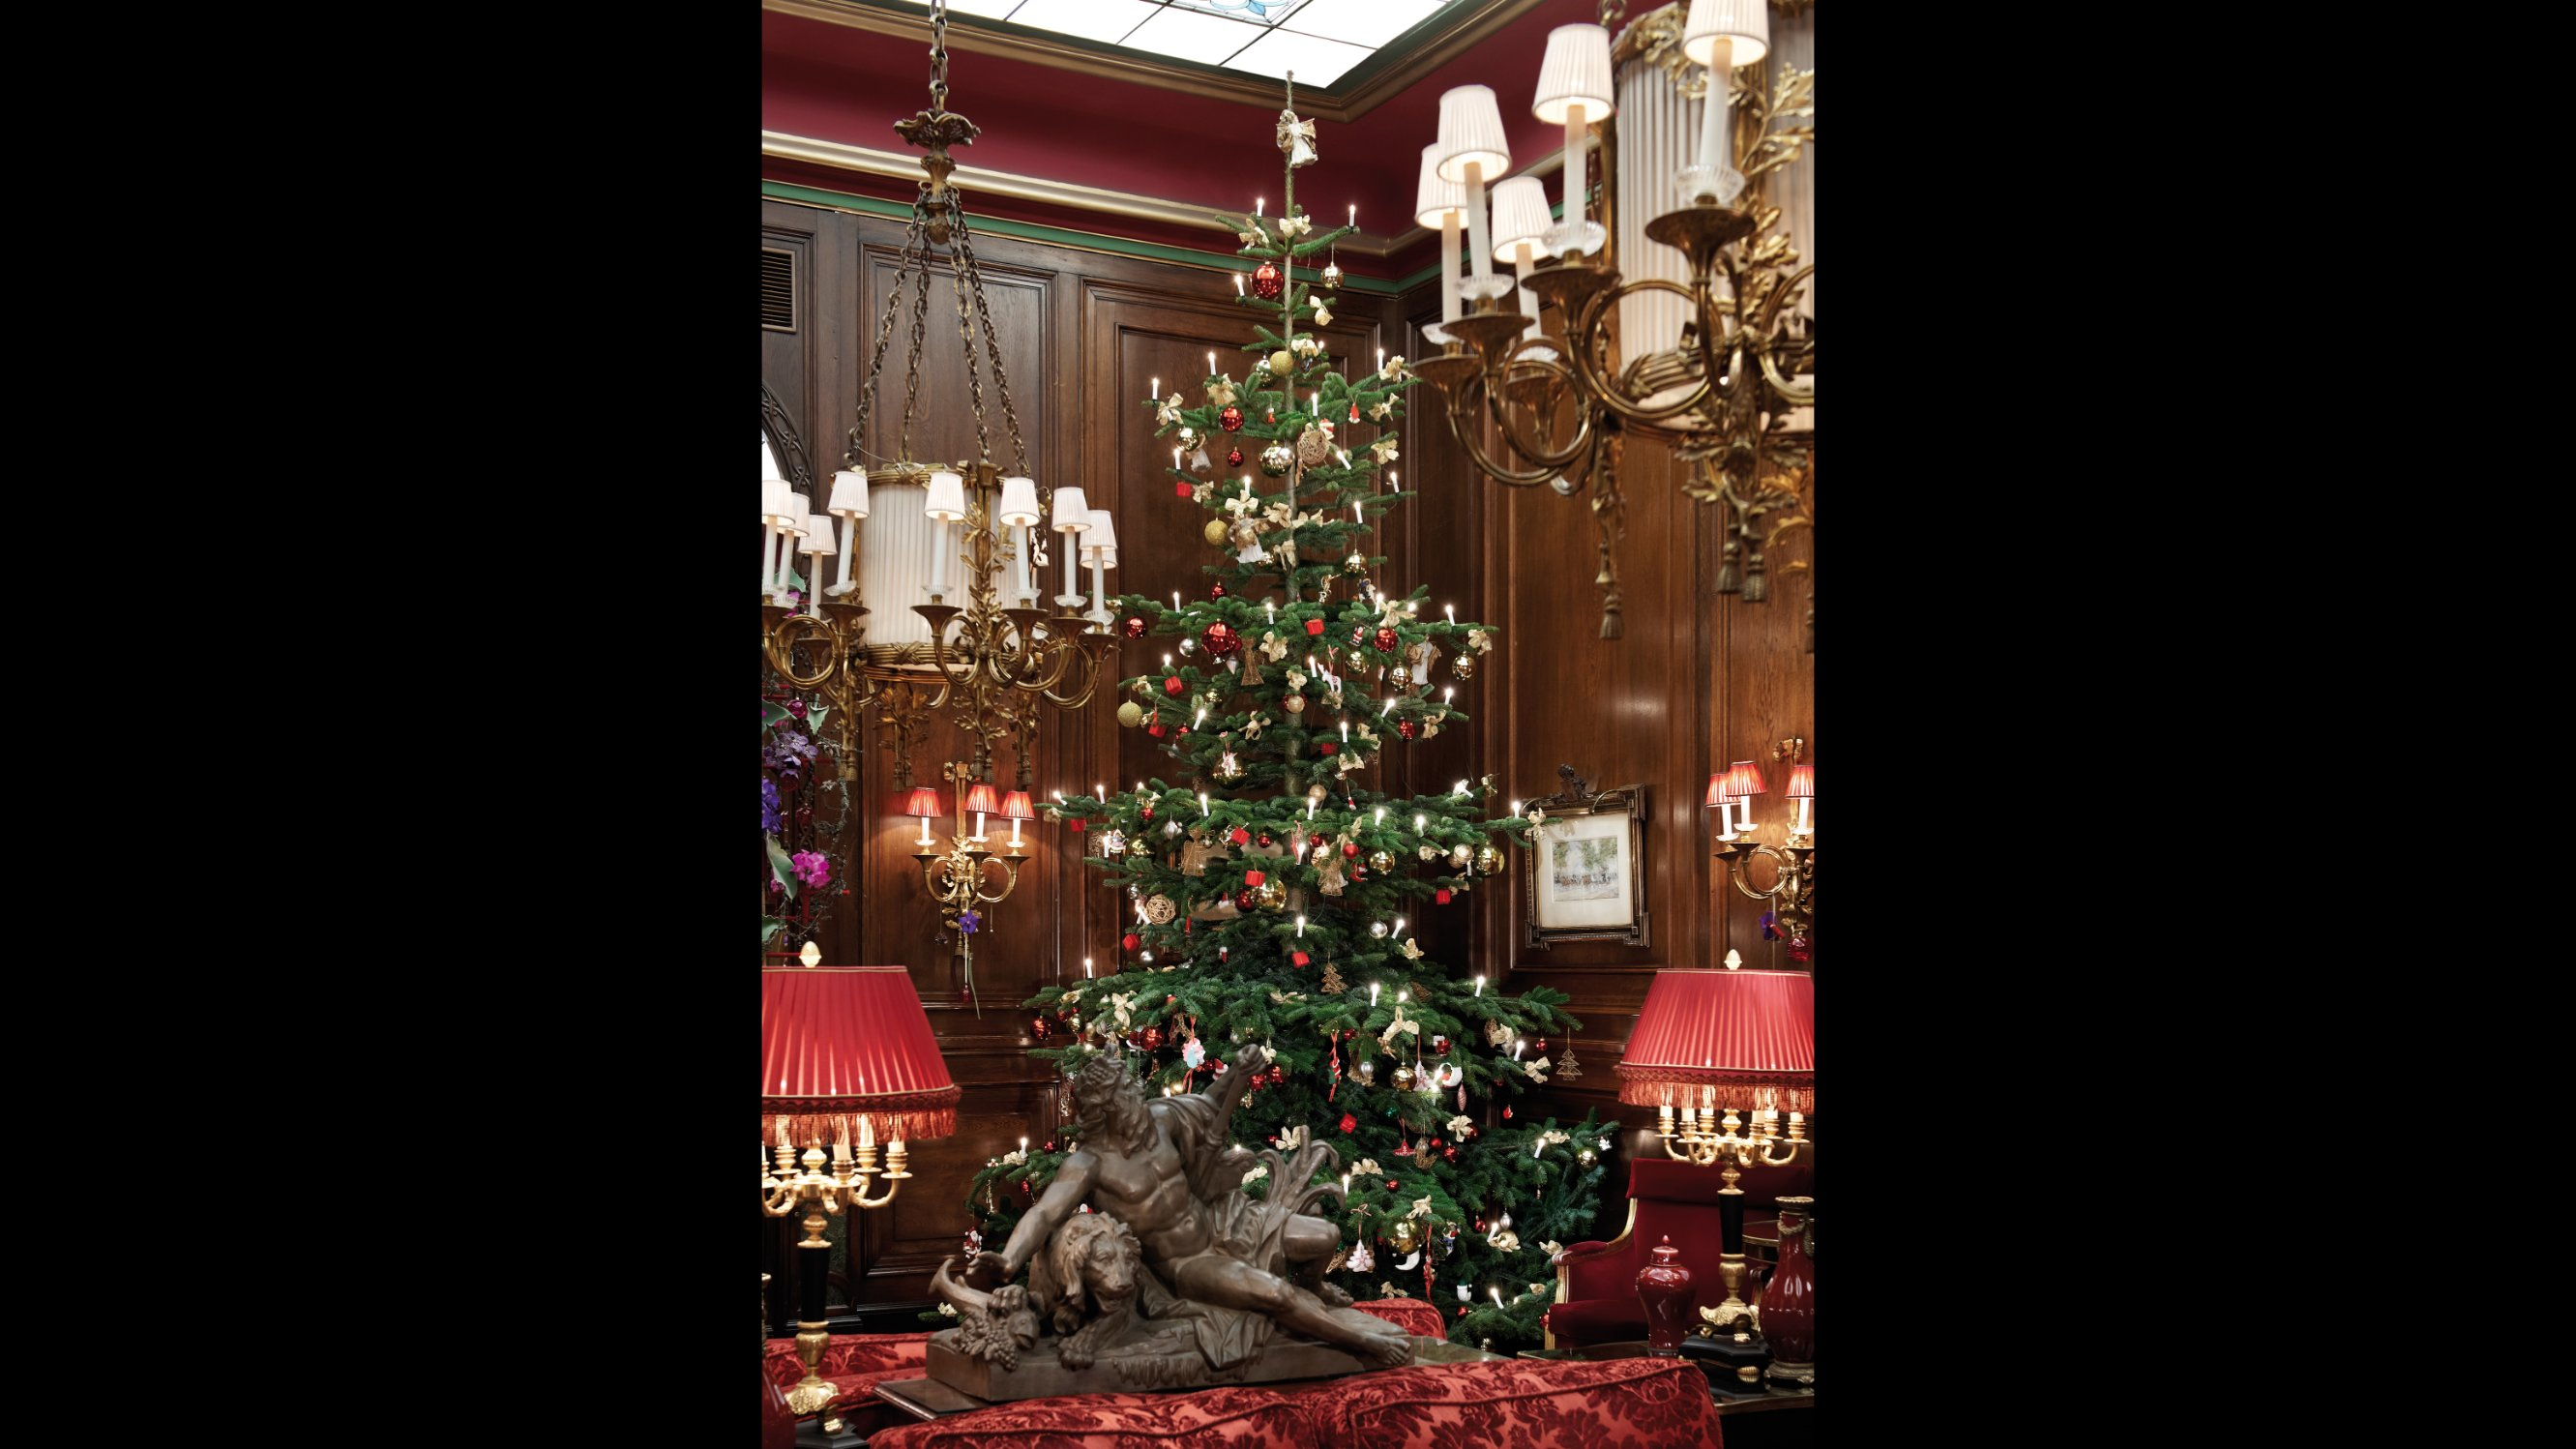 Hotels At Christmas: 10 That Go All Out For The Holidays | CNN Travel